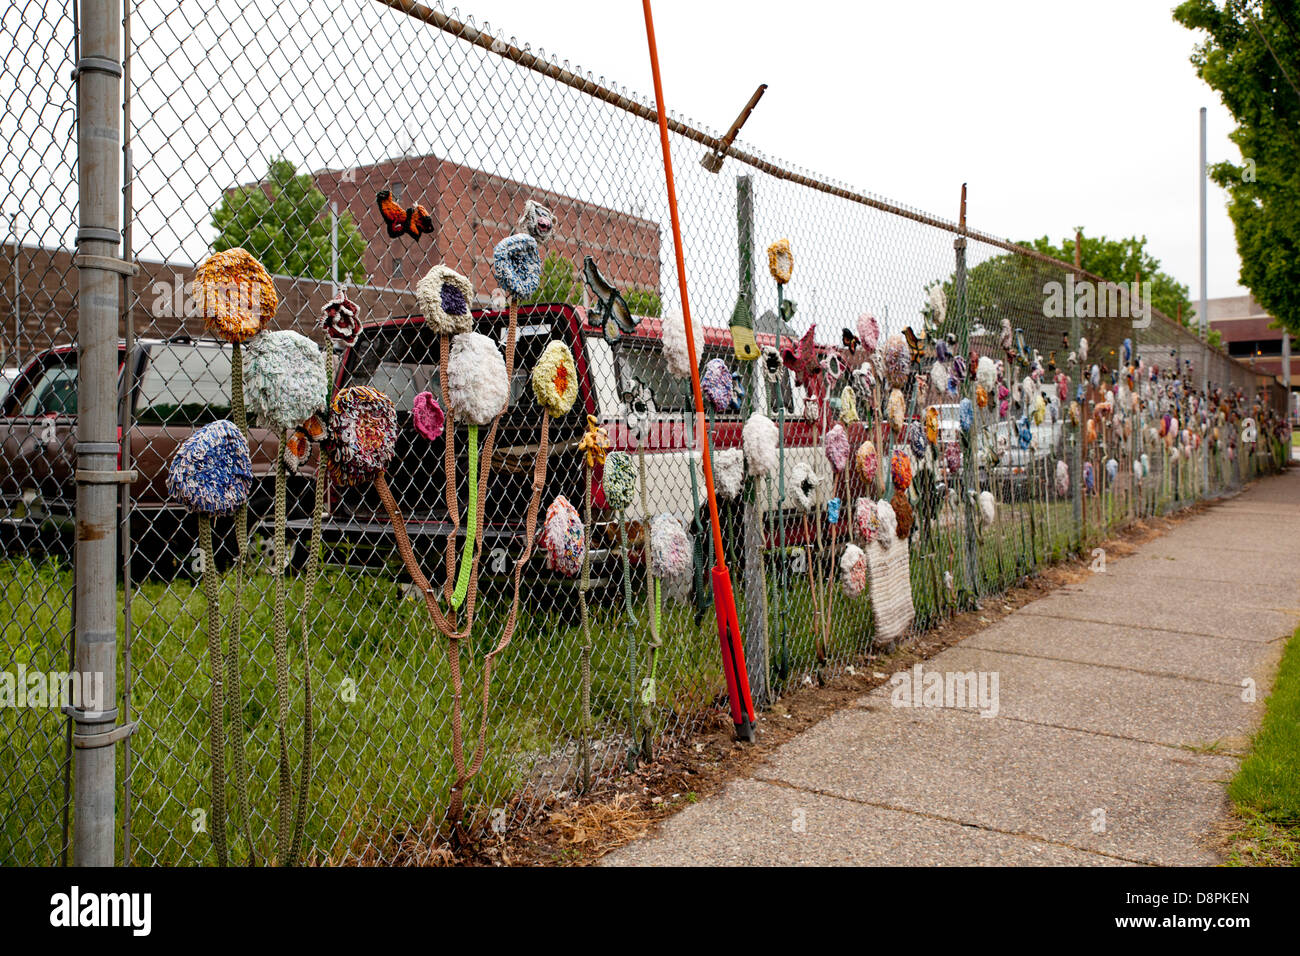 Fabric Flowers Decorating A Chain Link Fence Surrounding Junk Cars